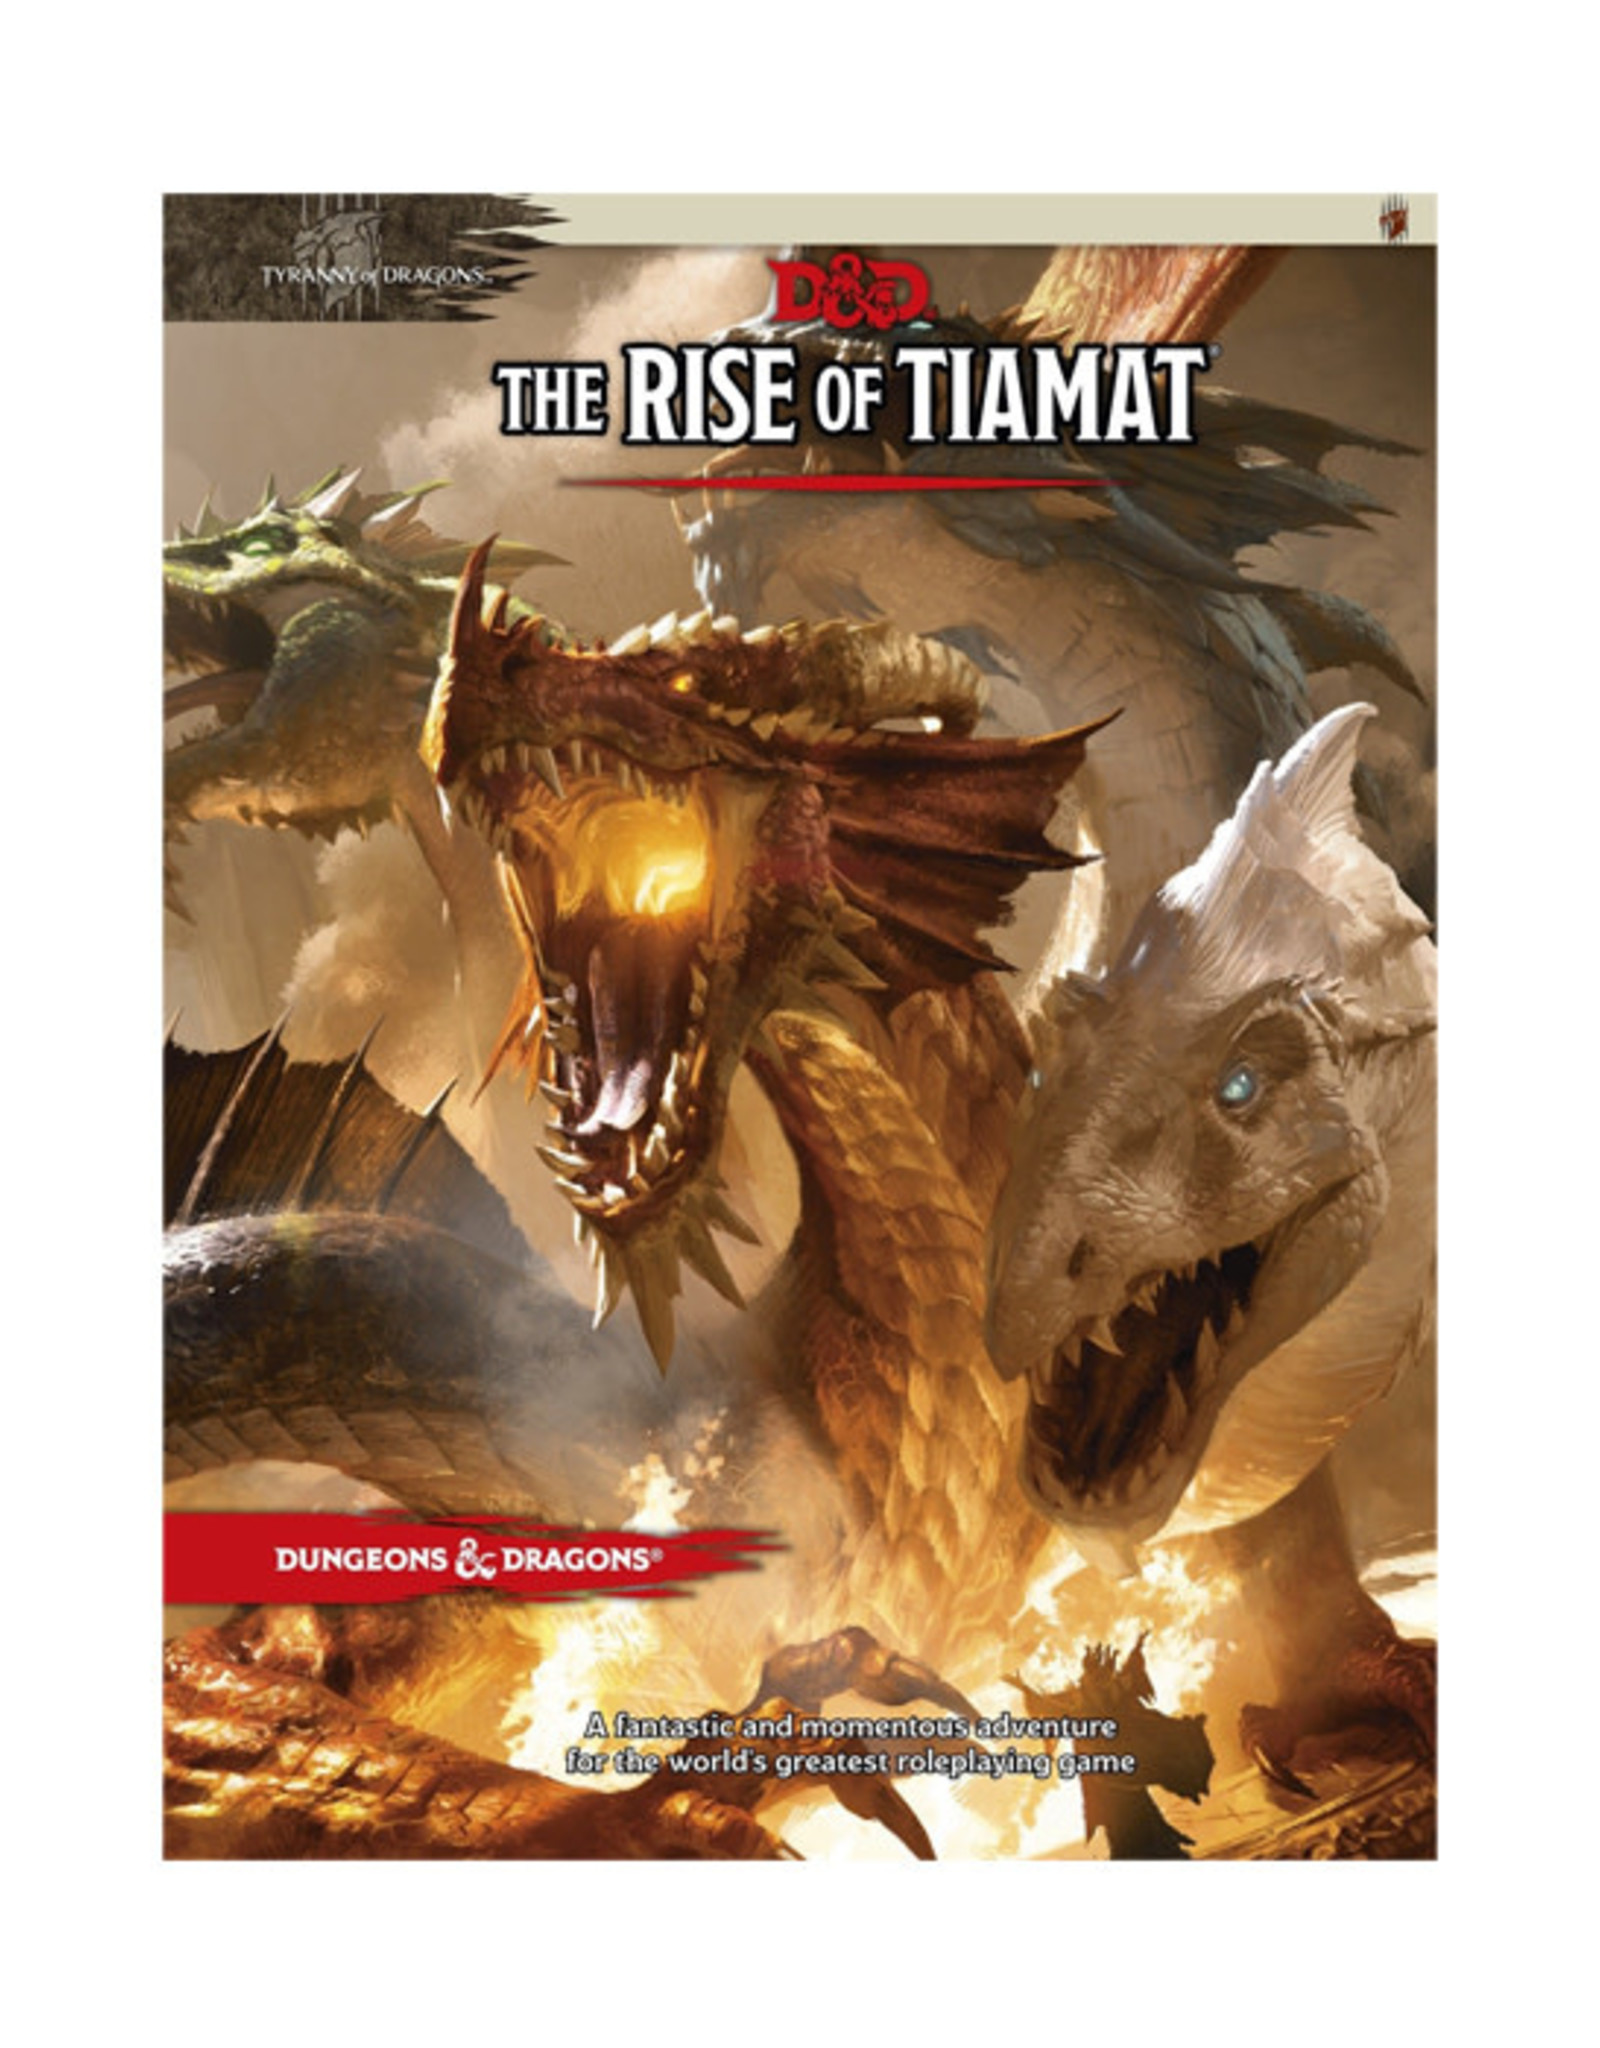 Dungeons & Dragons Dungeons & Dragons: 5th Edition - The Rise of Tiamat